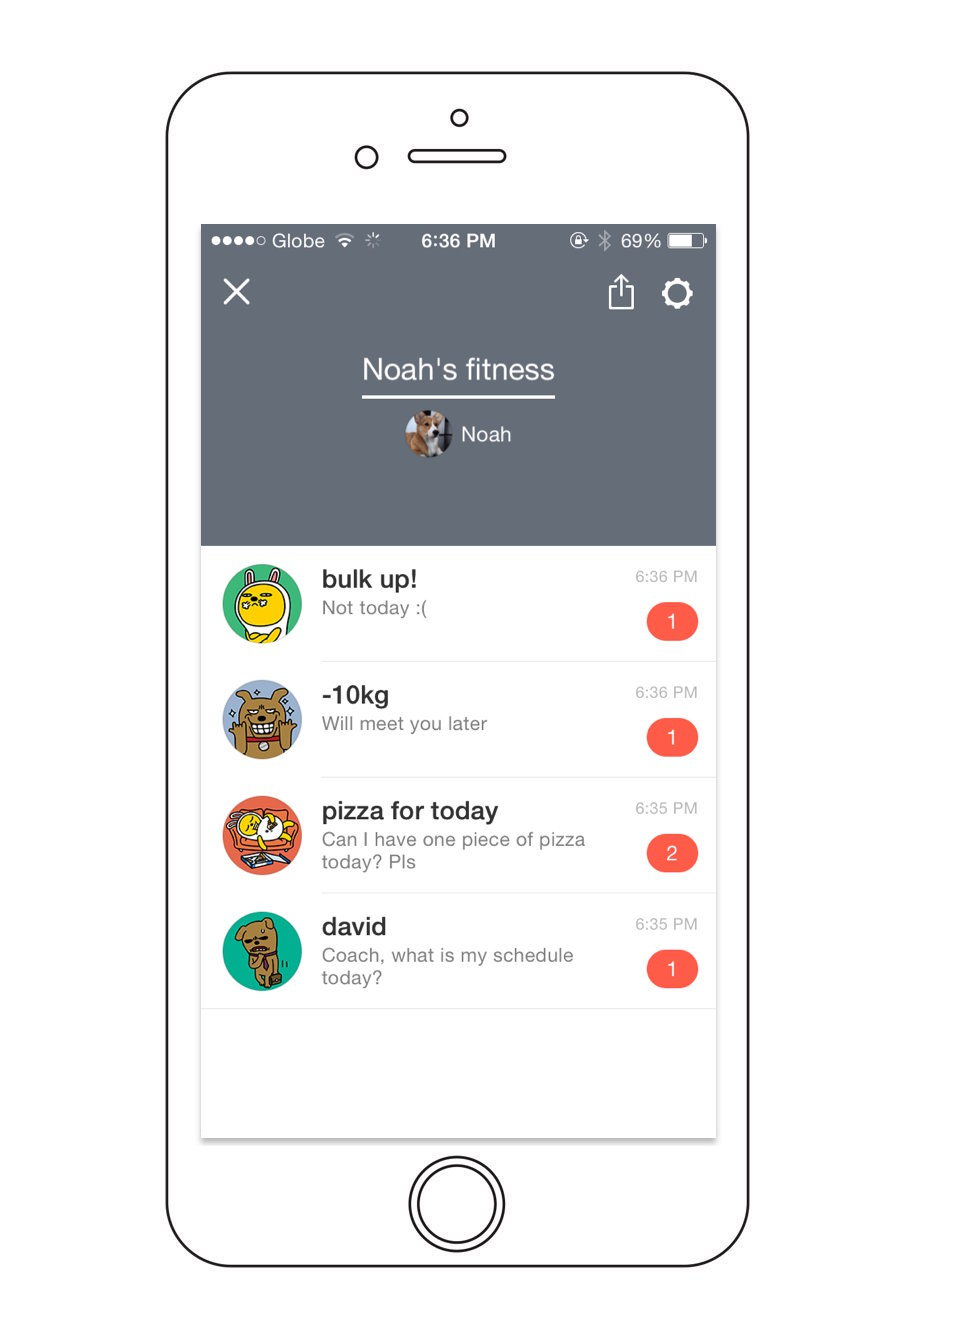 Digitista MediaWave: Kakao Talk launches Open Chat feature today!